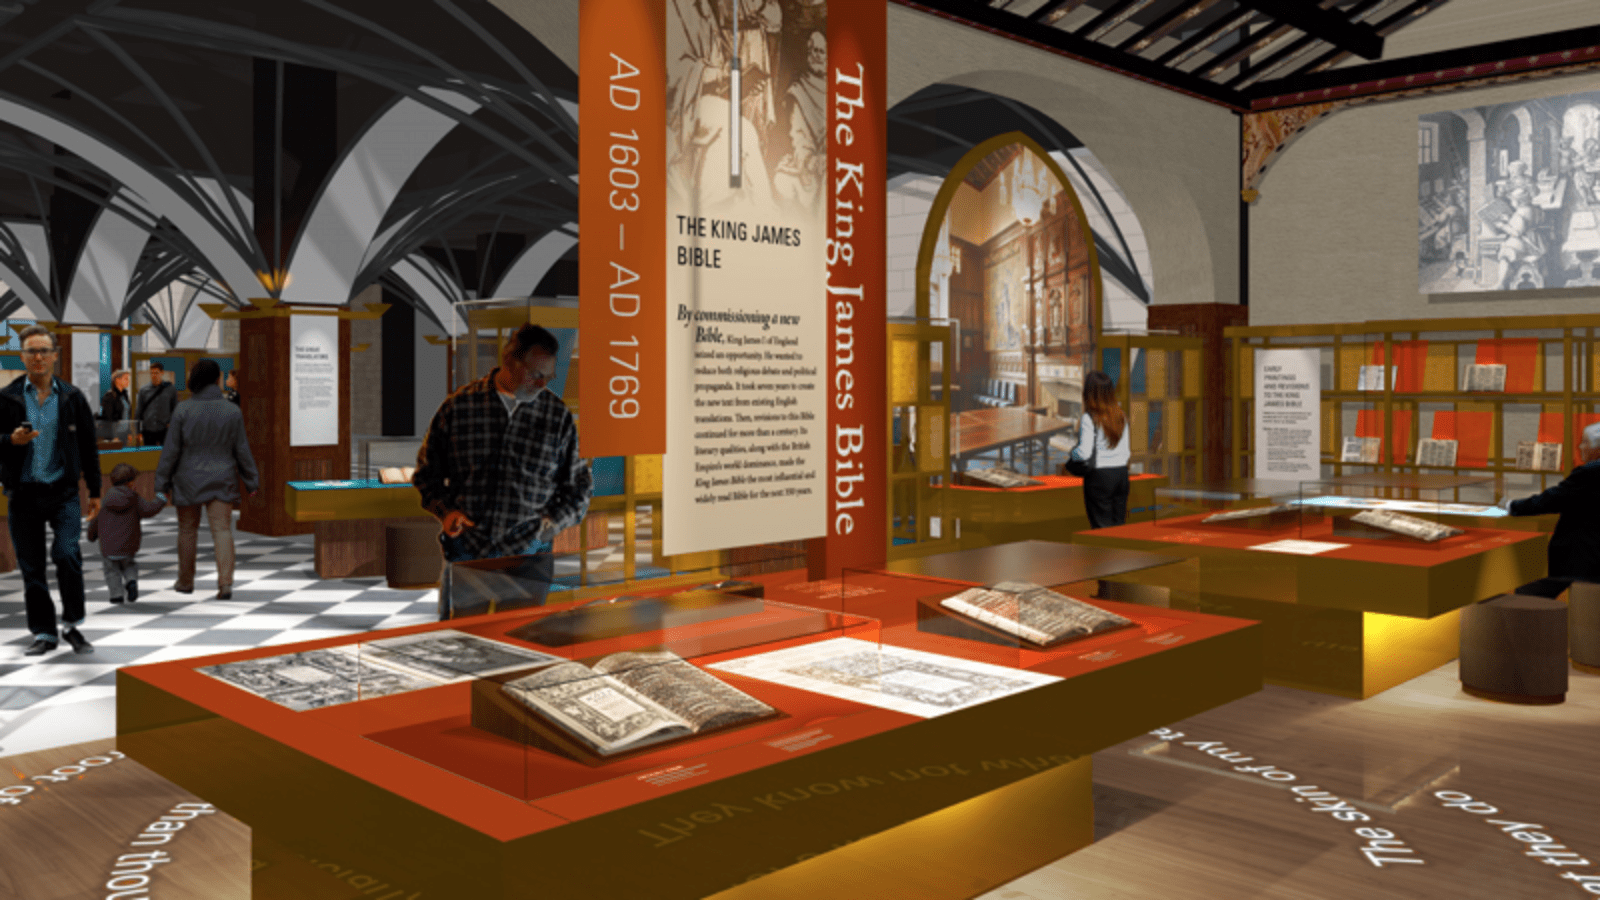 The history of the bible is on display